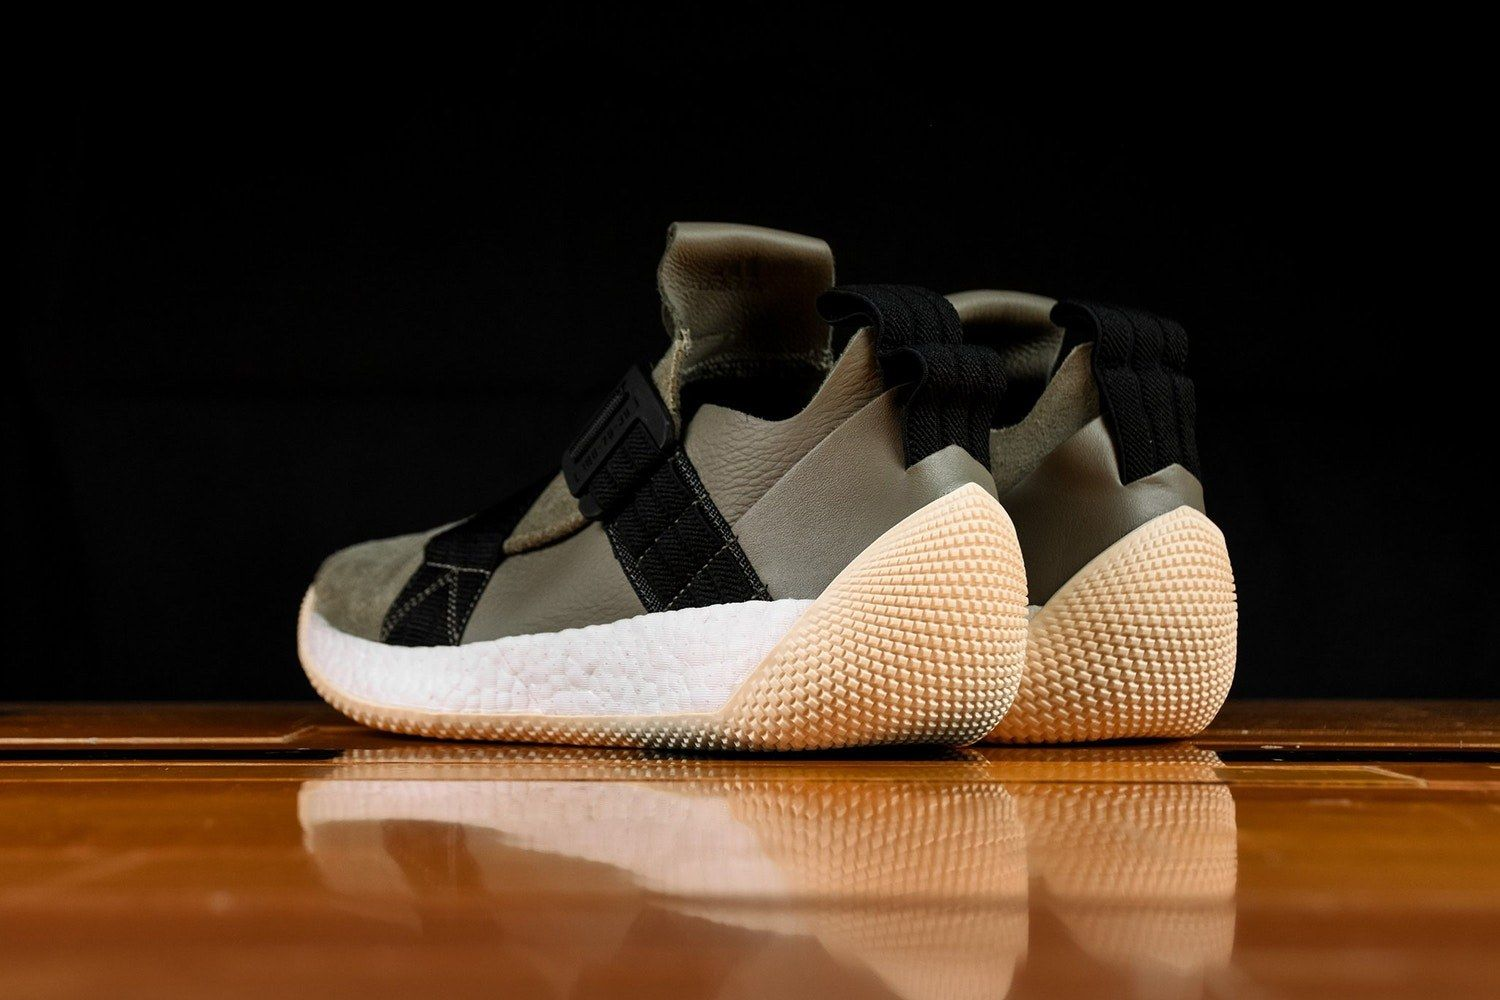 Adidas Harden Ls 2 Buckle Olive First Look 2